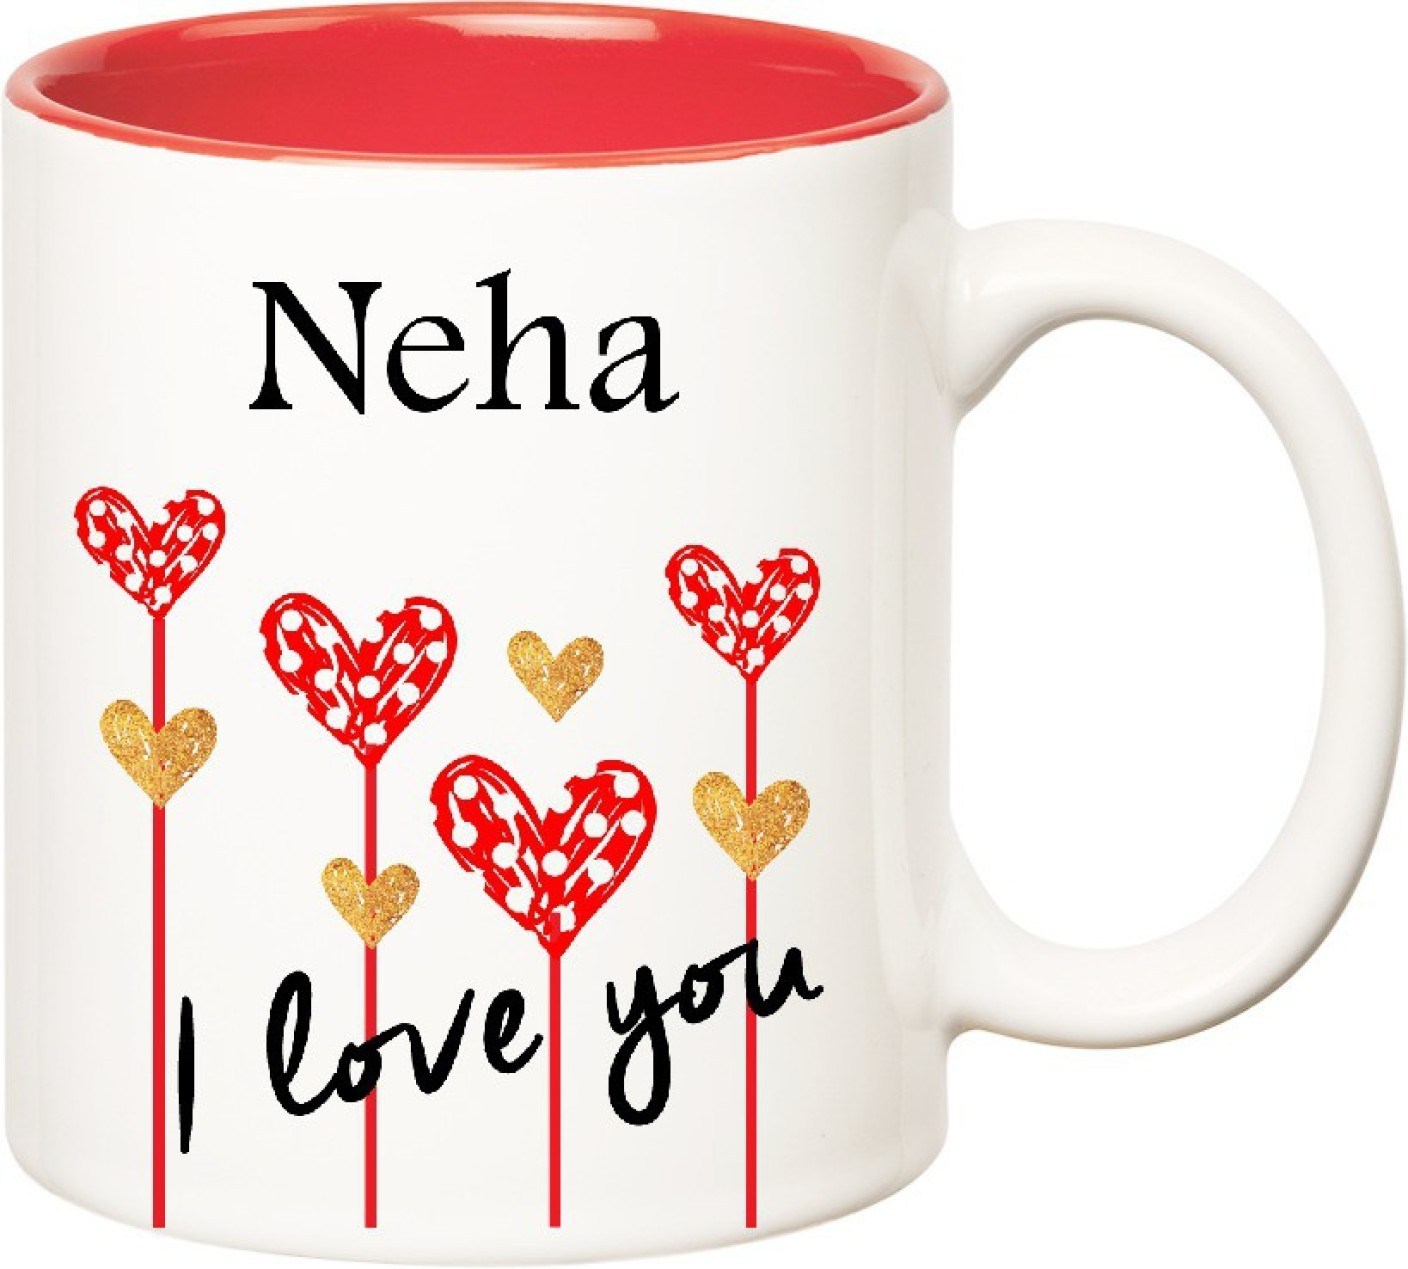 Wonderful Wallpaper Name Neha - 1-huppmegift-i-love-you-neha-inner-red-mug-350-ml-original-imaejngt4xsqvdjp  Perfect Image Reference_113110.jpeg?q\u003d90